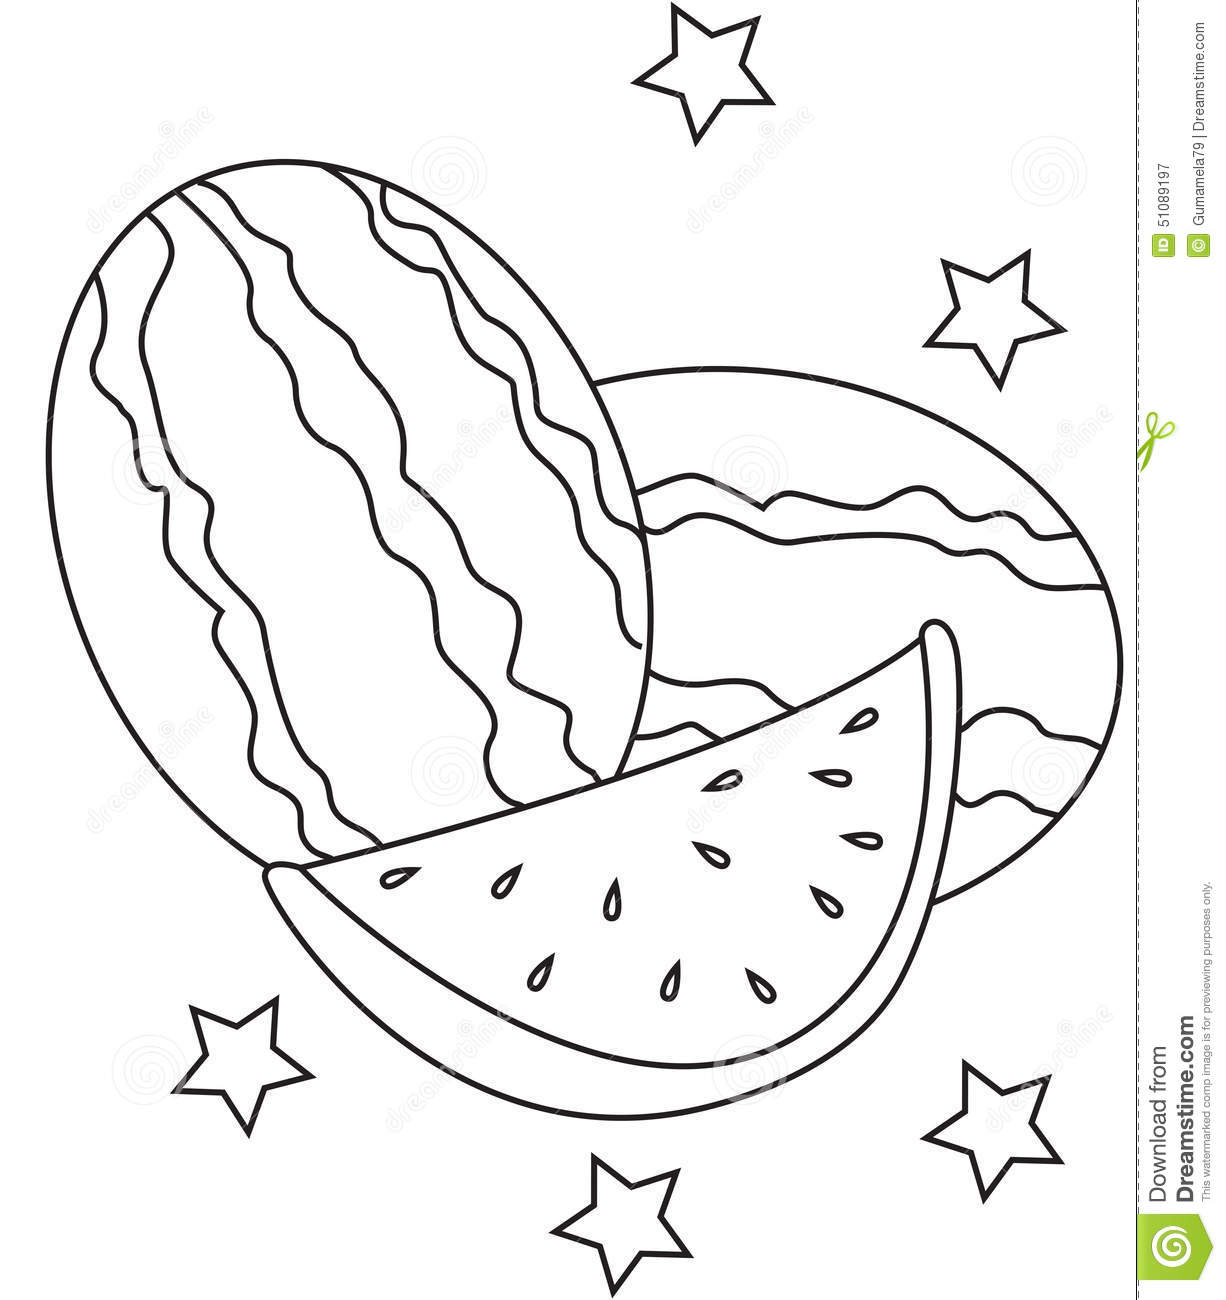 Watermelon Coloring Page Stock Illustration - Image: 51089197